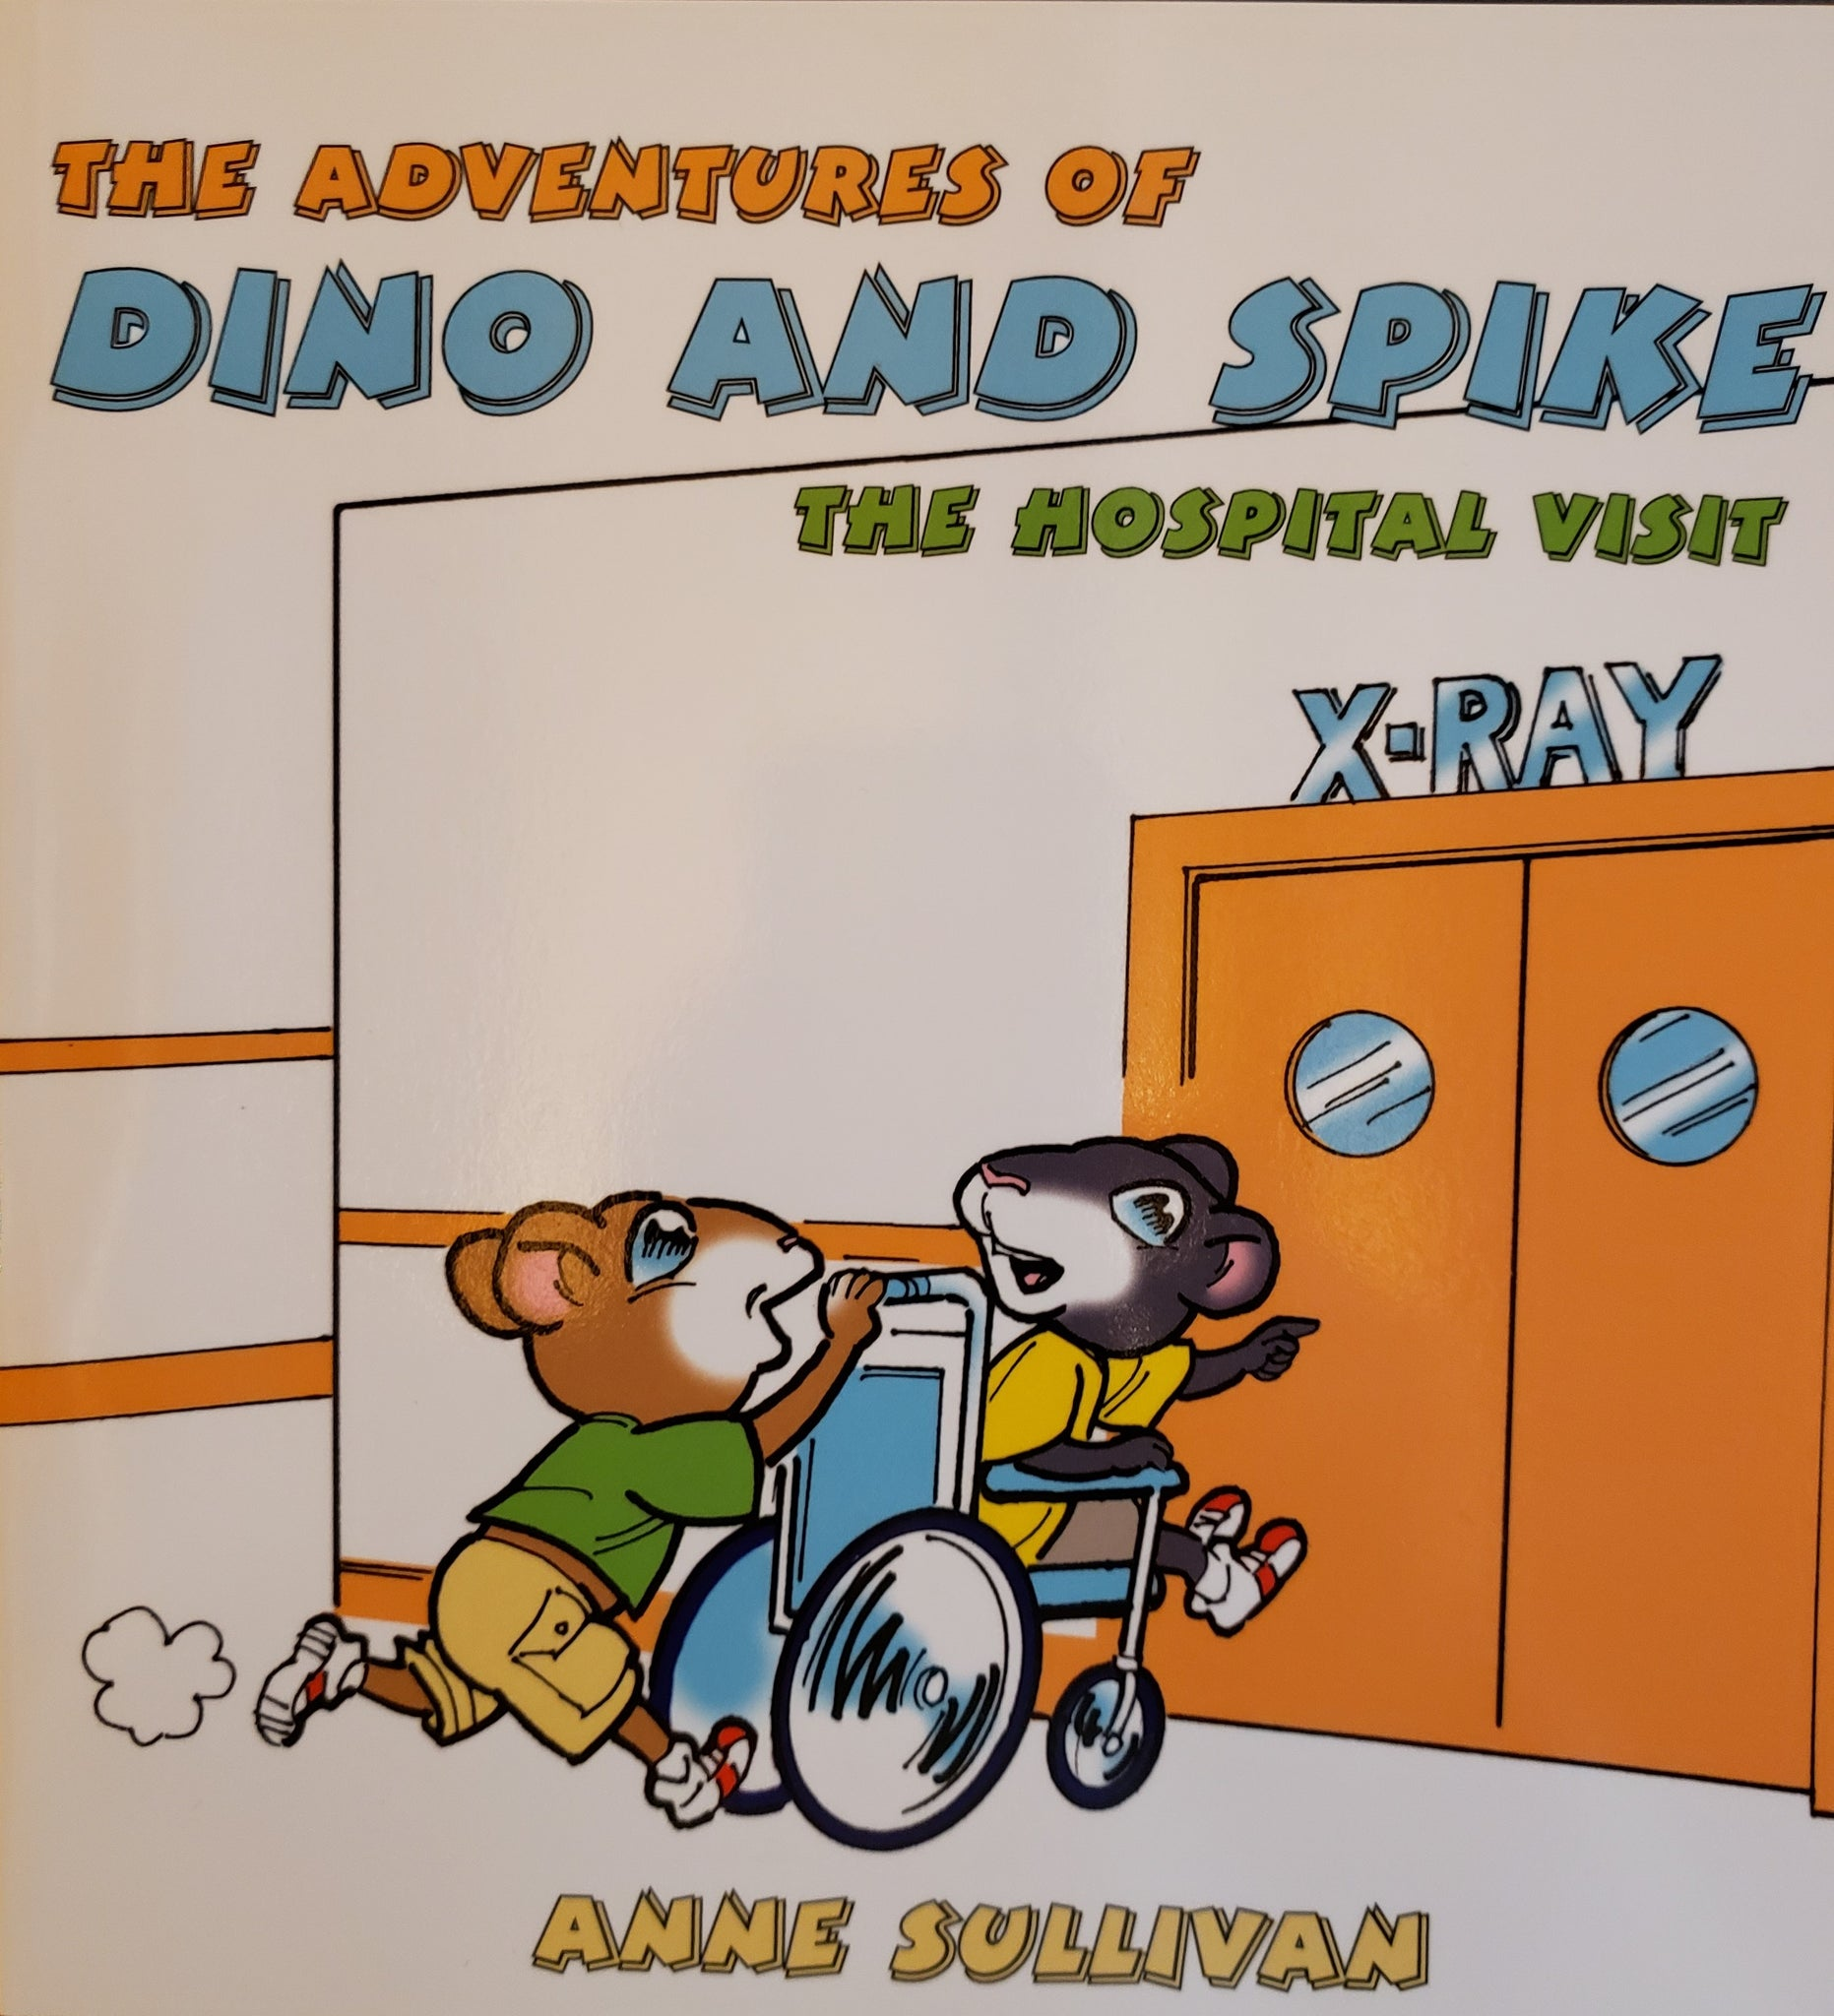 The Adventures of Dino and Spike The Hospital Visit